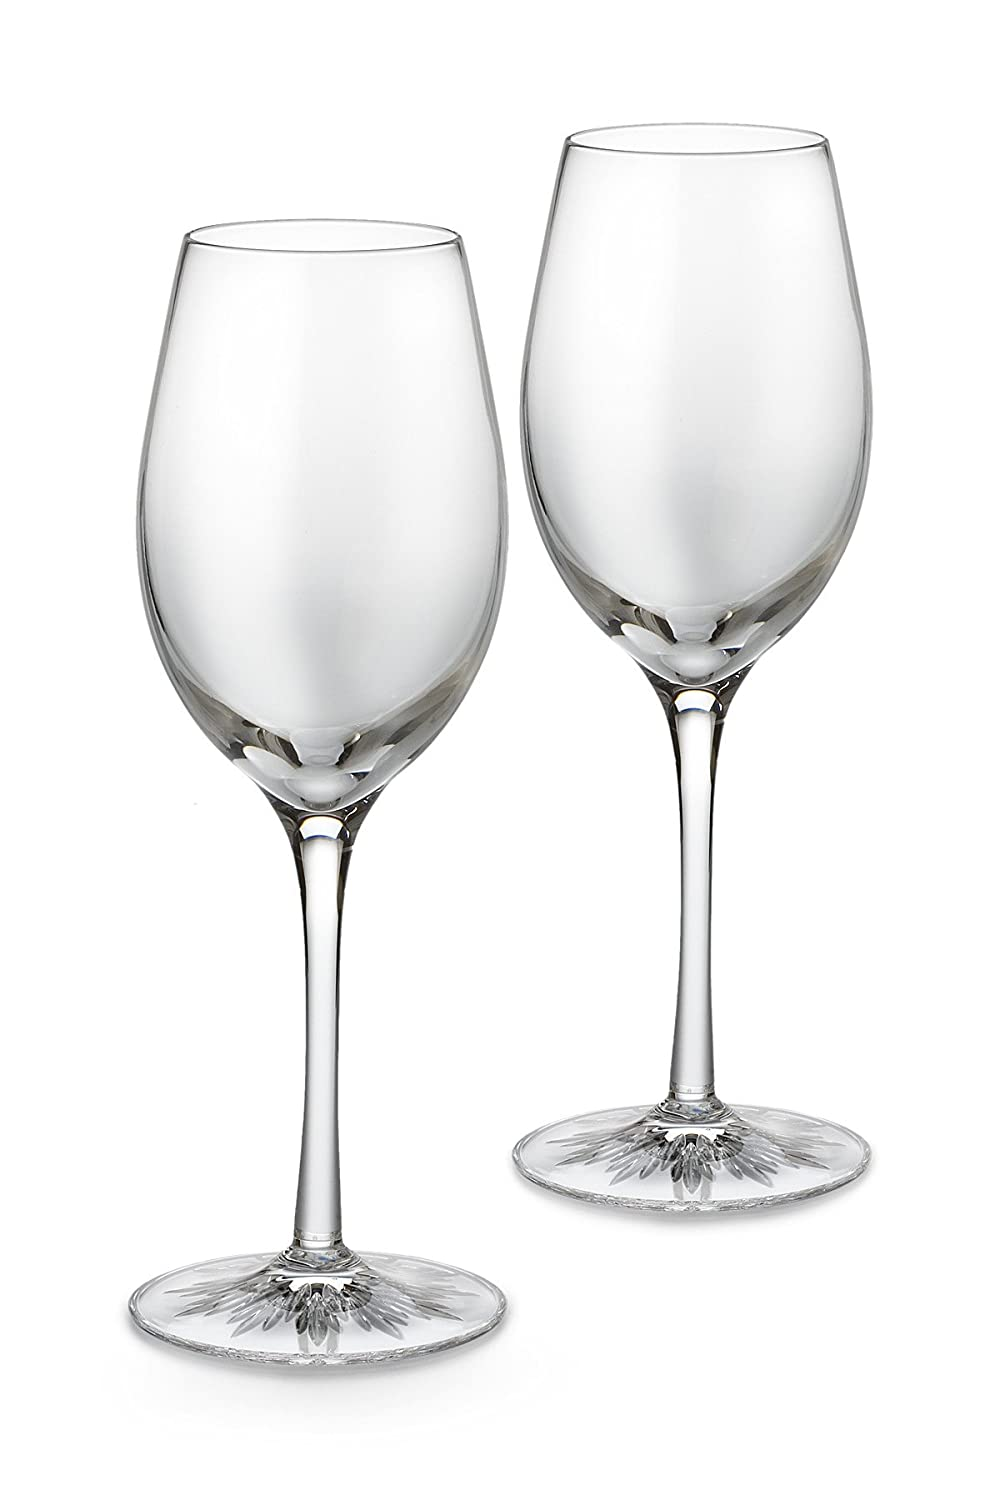 amazoncom waterford light white wine glasses set of 2 clearly waterford wine glassess wine glasses - Waterford Crystal Wine Glasses